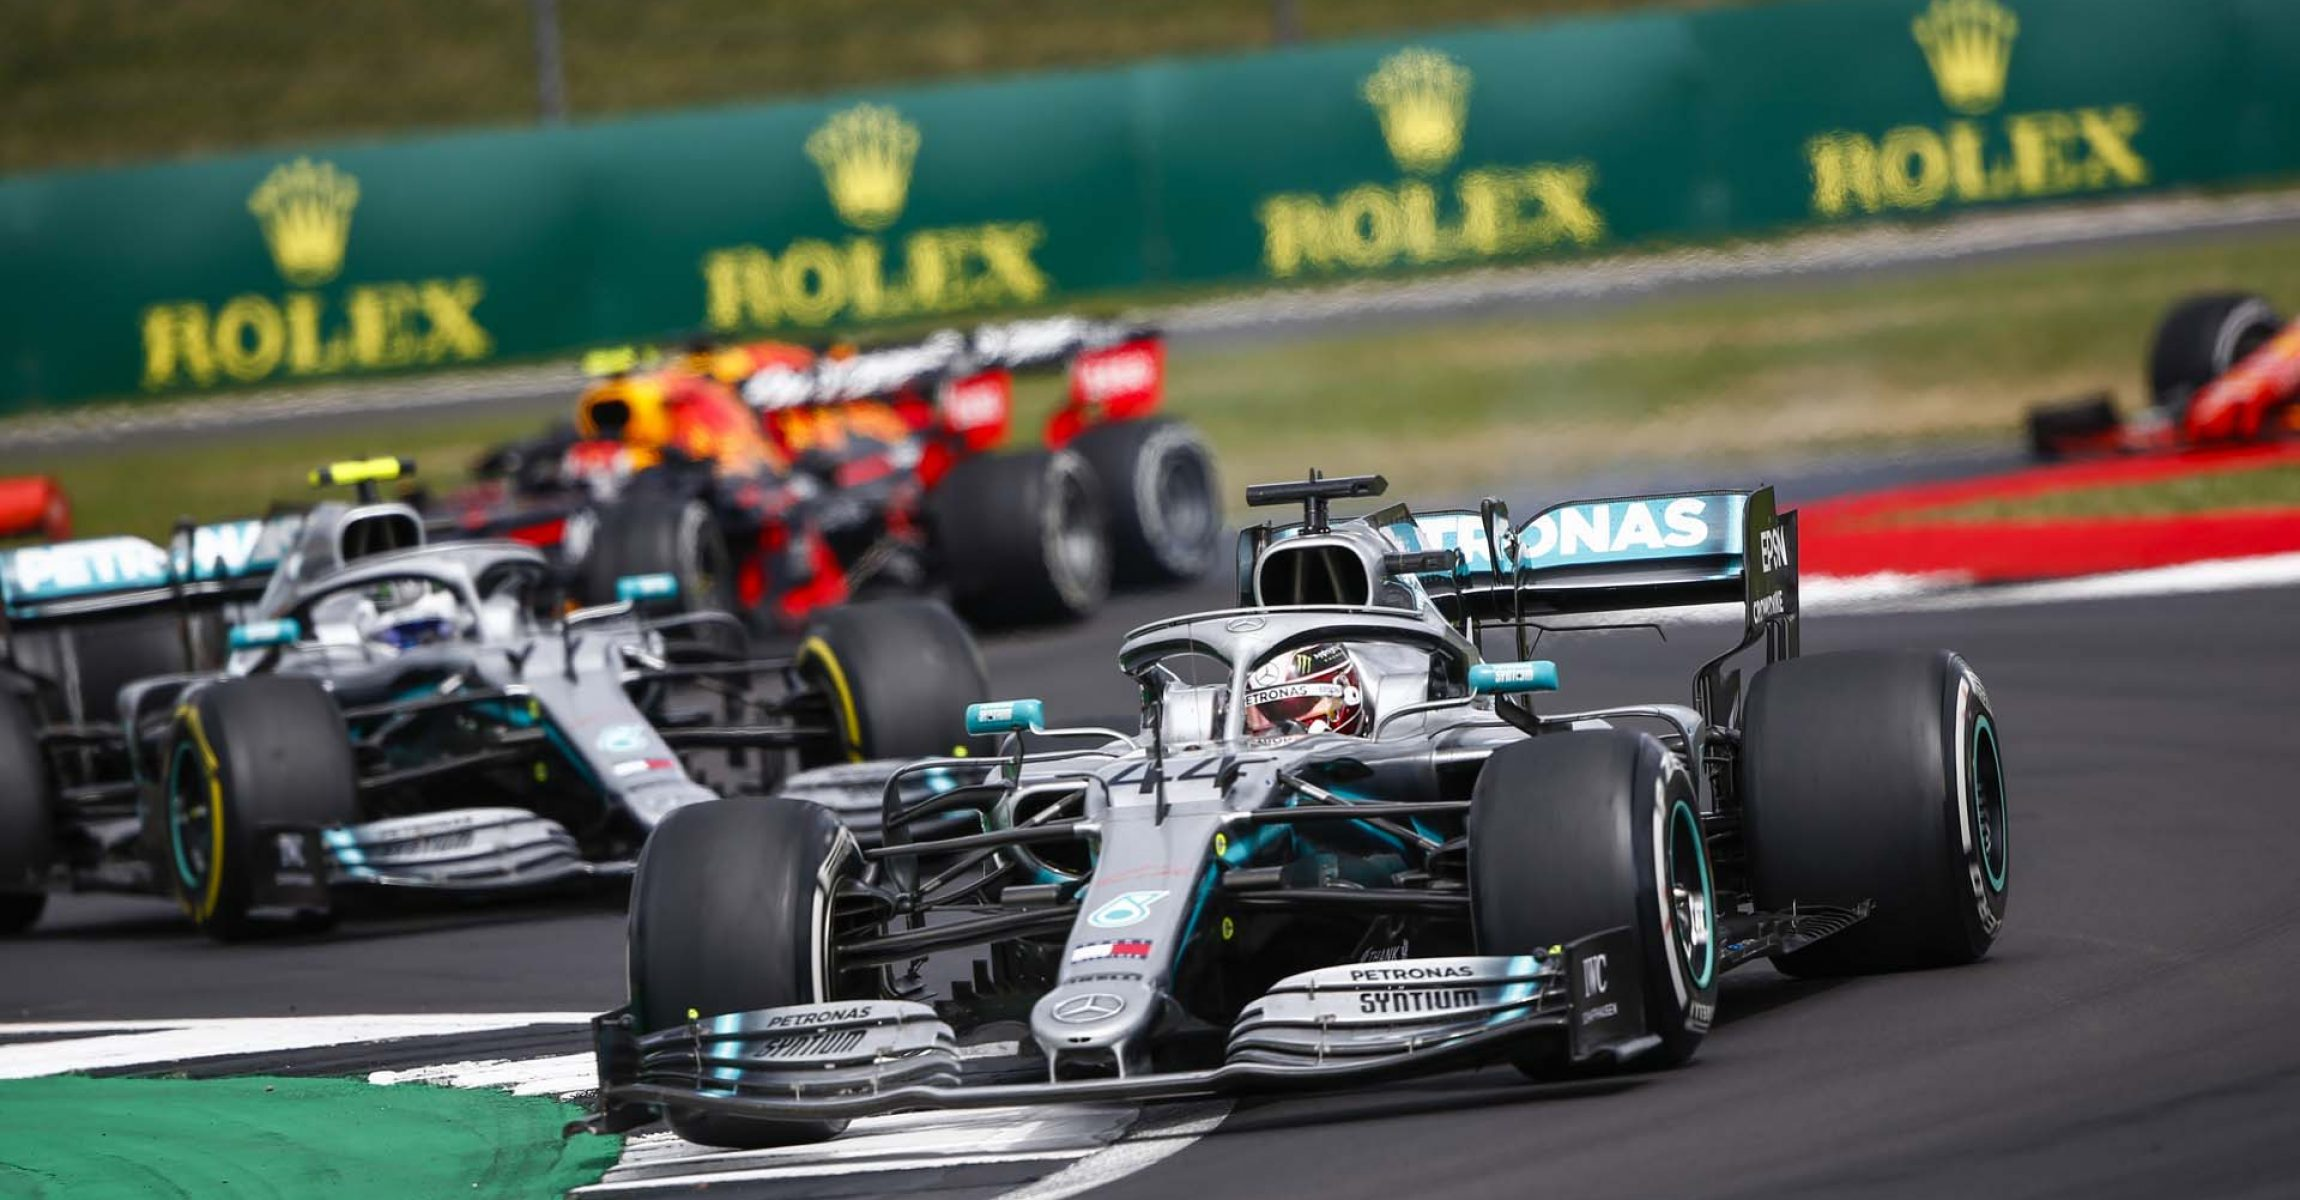 2019 British Grand Prix, Sunday - LAT Images Lewis Hamilton, followed by Valtteri Bottas Mercedes